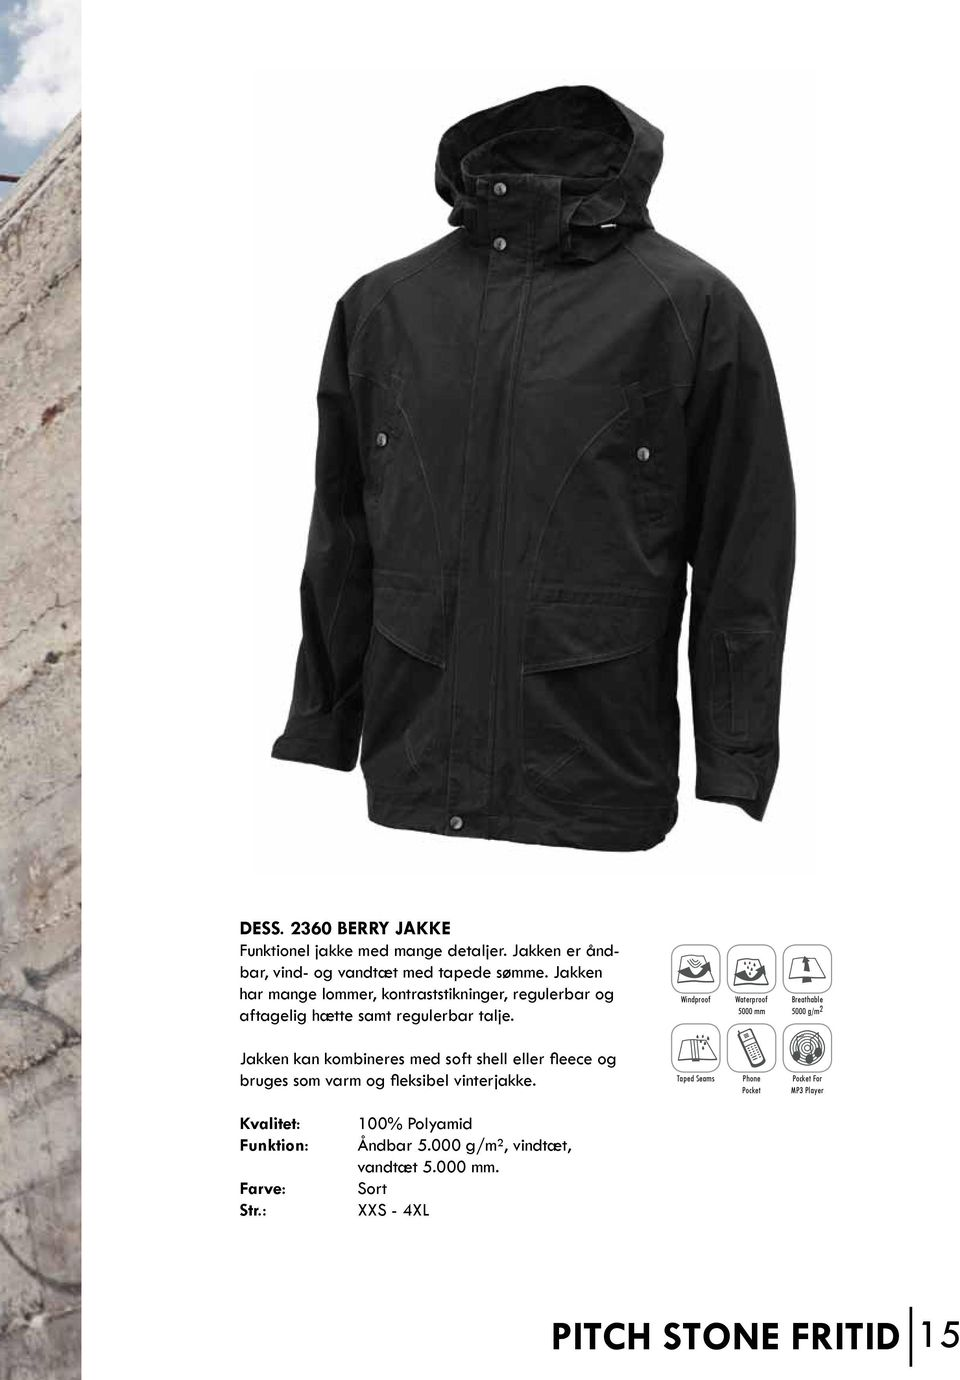 Windproof Waterproof 5000 mm 5000 g/m 2 Jakken kan kombineres med soft shell eller fleece og bruges som varm og